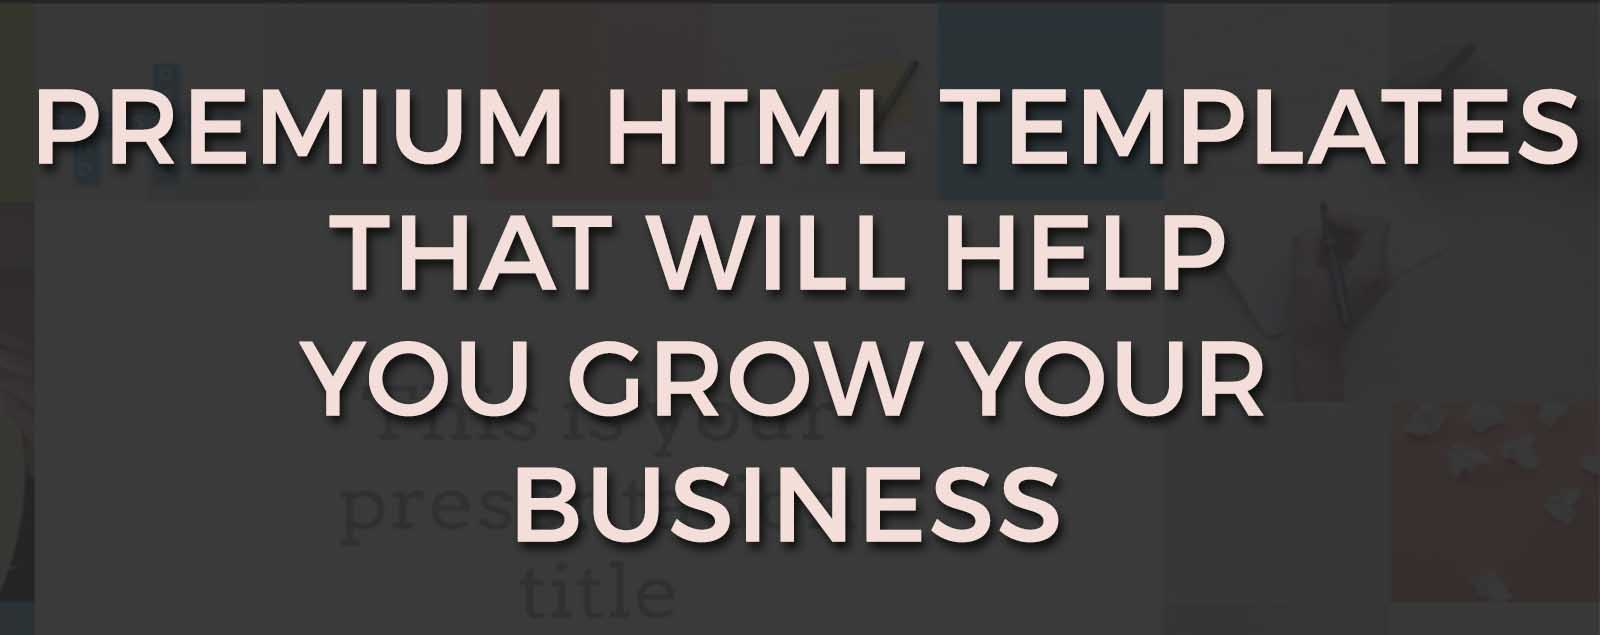 Premium HTML Templates To Grow Your Business Exponentially- Weblizar